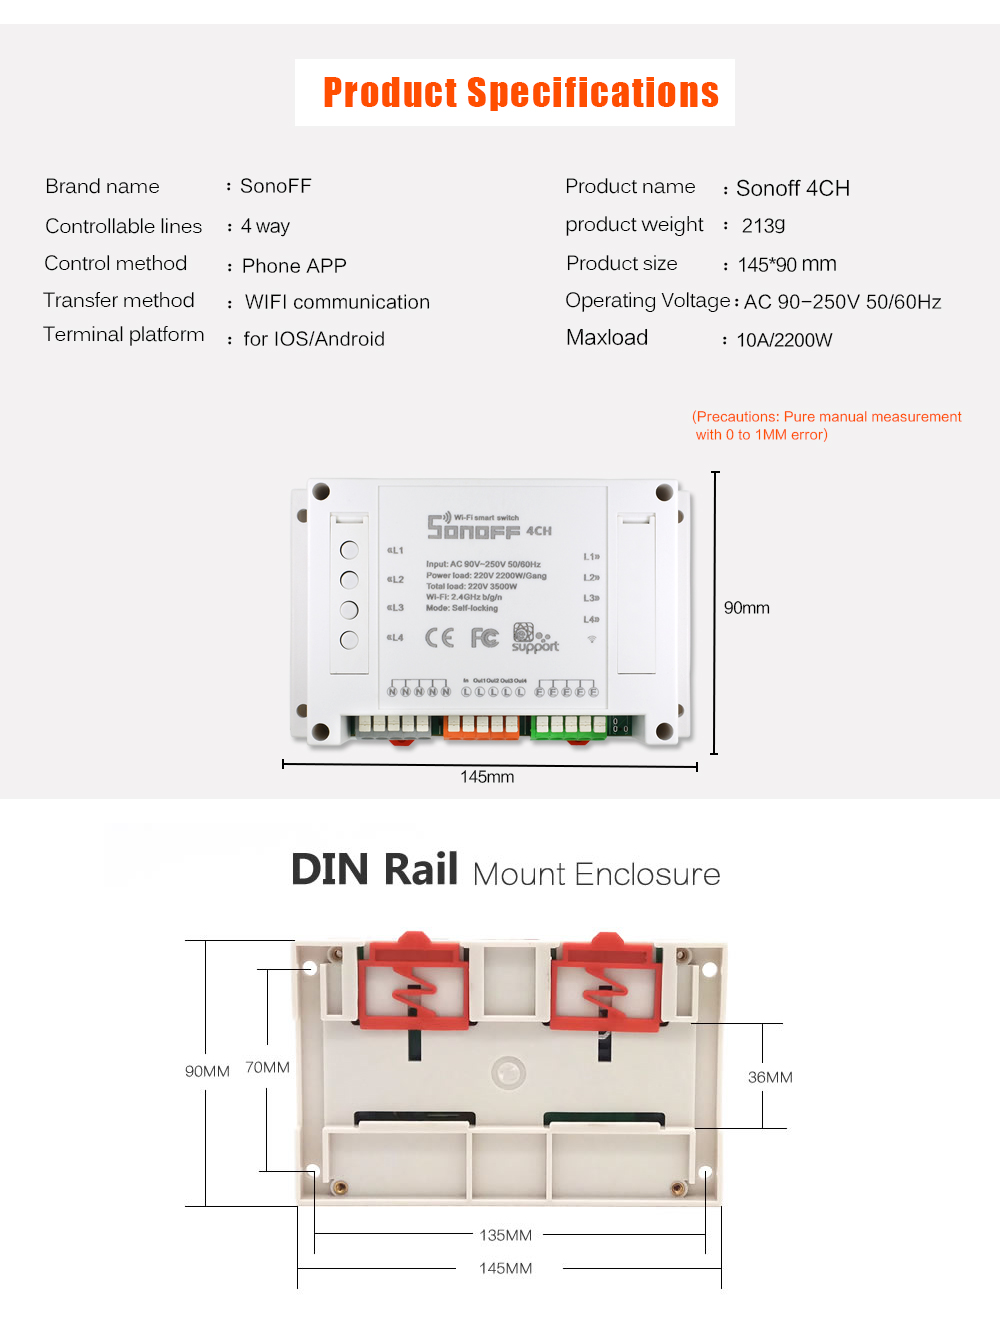 Itead Sonoff 4ch Din Rail Mount On Off Wifi Wireless Switch Remote Pcb Circuit Board Mounting Bracket For Fst Control Smart Home 591 01 02 03 04 05 06 07 08